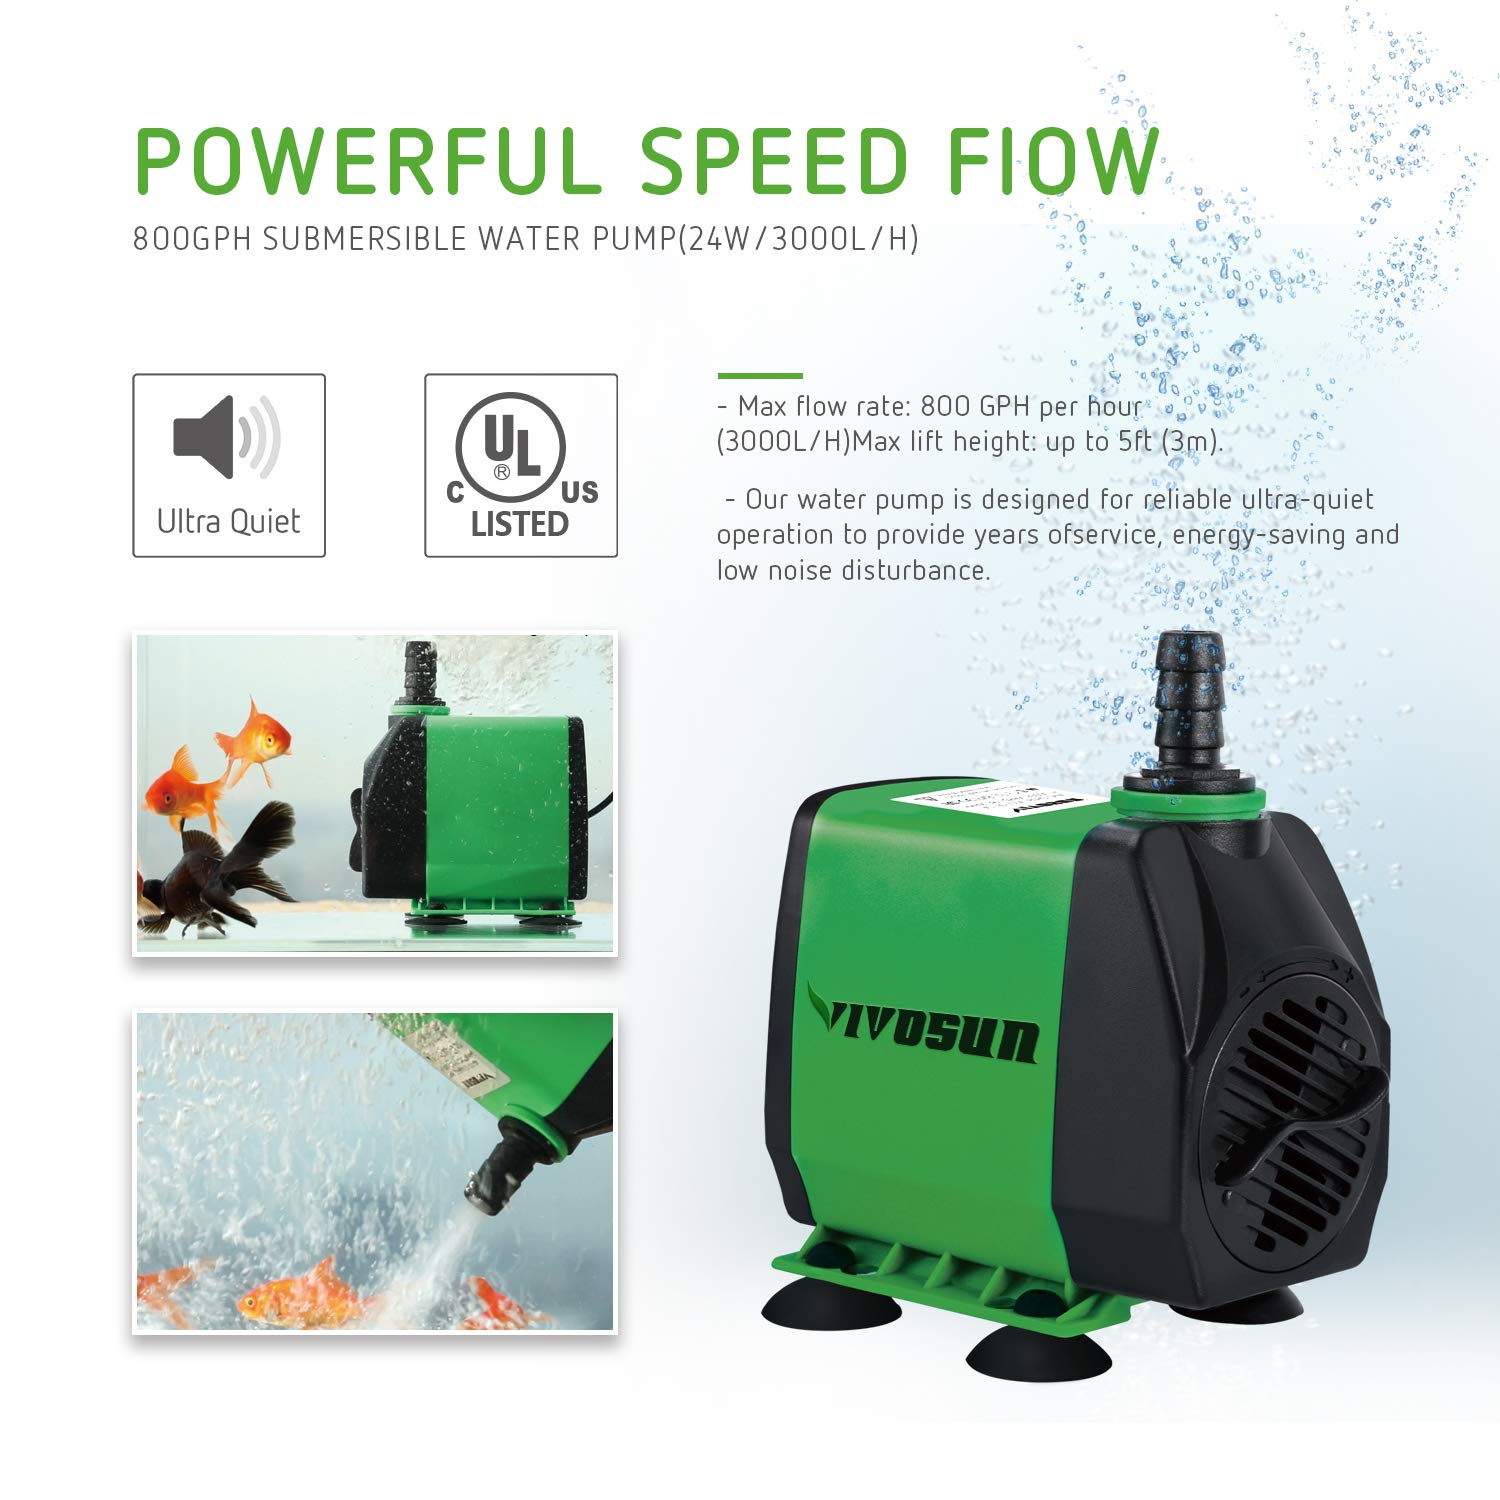 VIVOSUN 800GPH Submersible Pump(3000L/H, 24W), Ultra Quiet Water Pump with 10ft High Lift, Fountain Pump with 5ft Power Cord, 3 Nozzles for Fish Tank, Pond, Aquarium, Statuary, Hydroponics by VIVOSUN (Image #5)